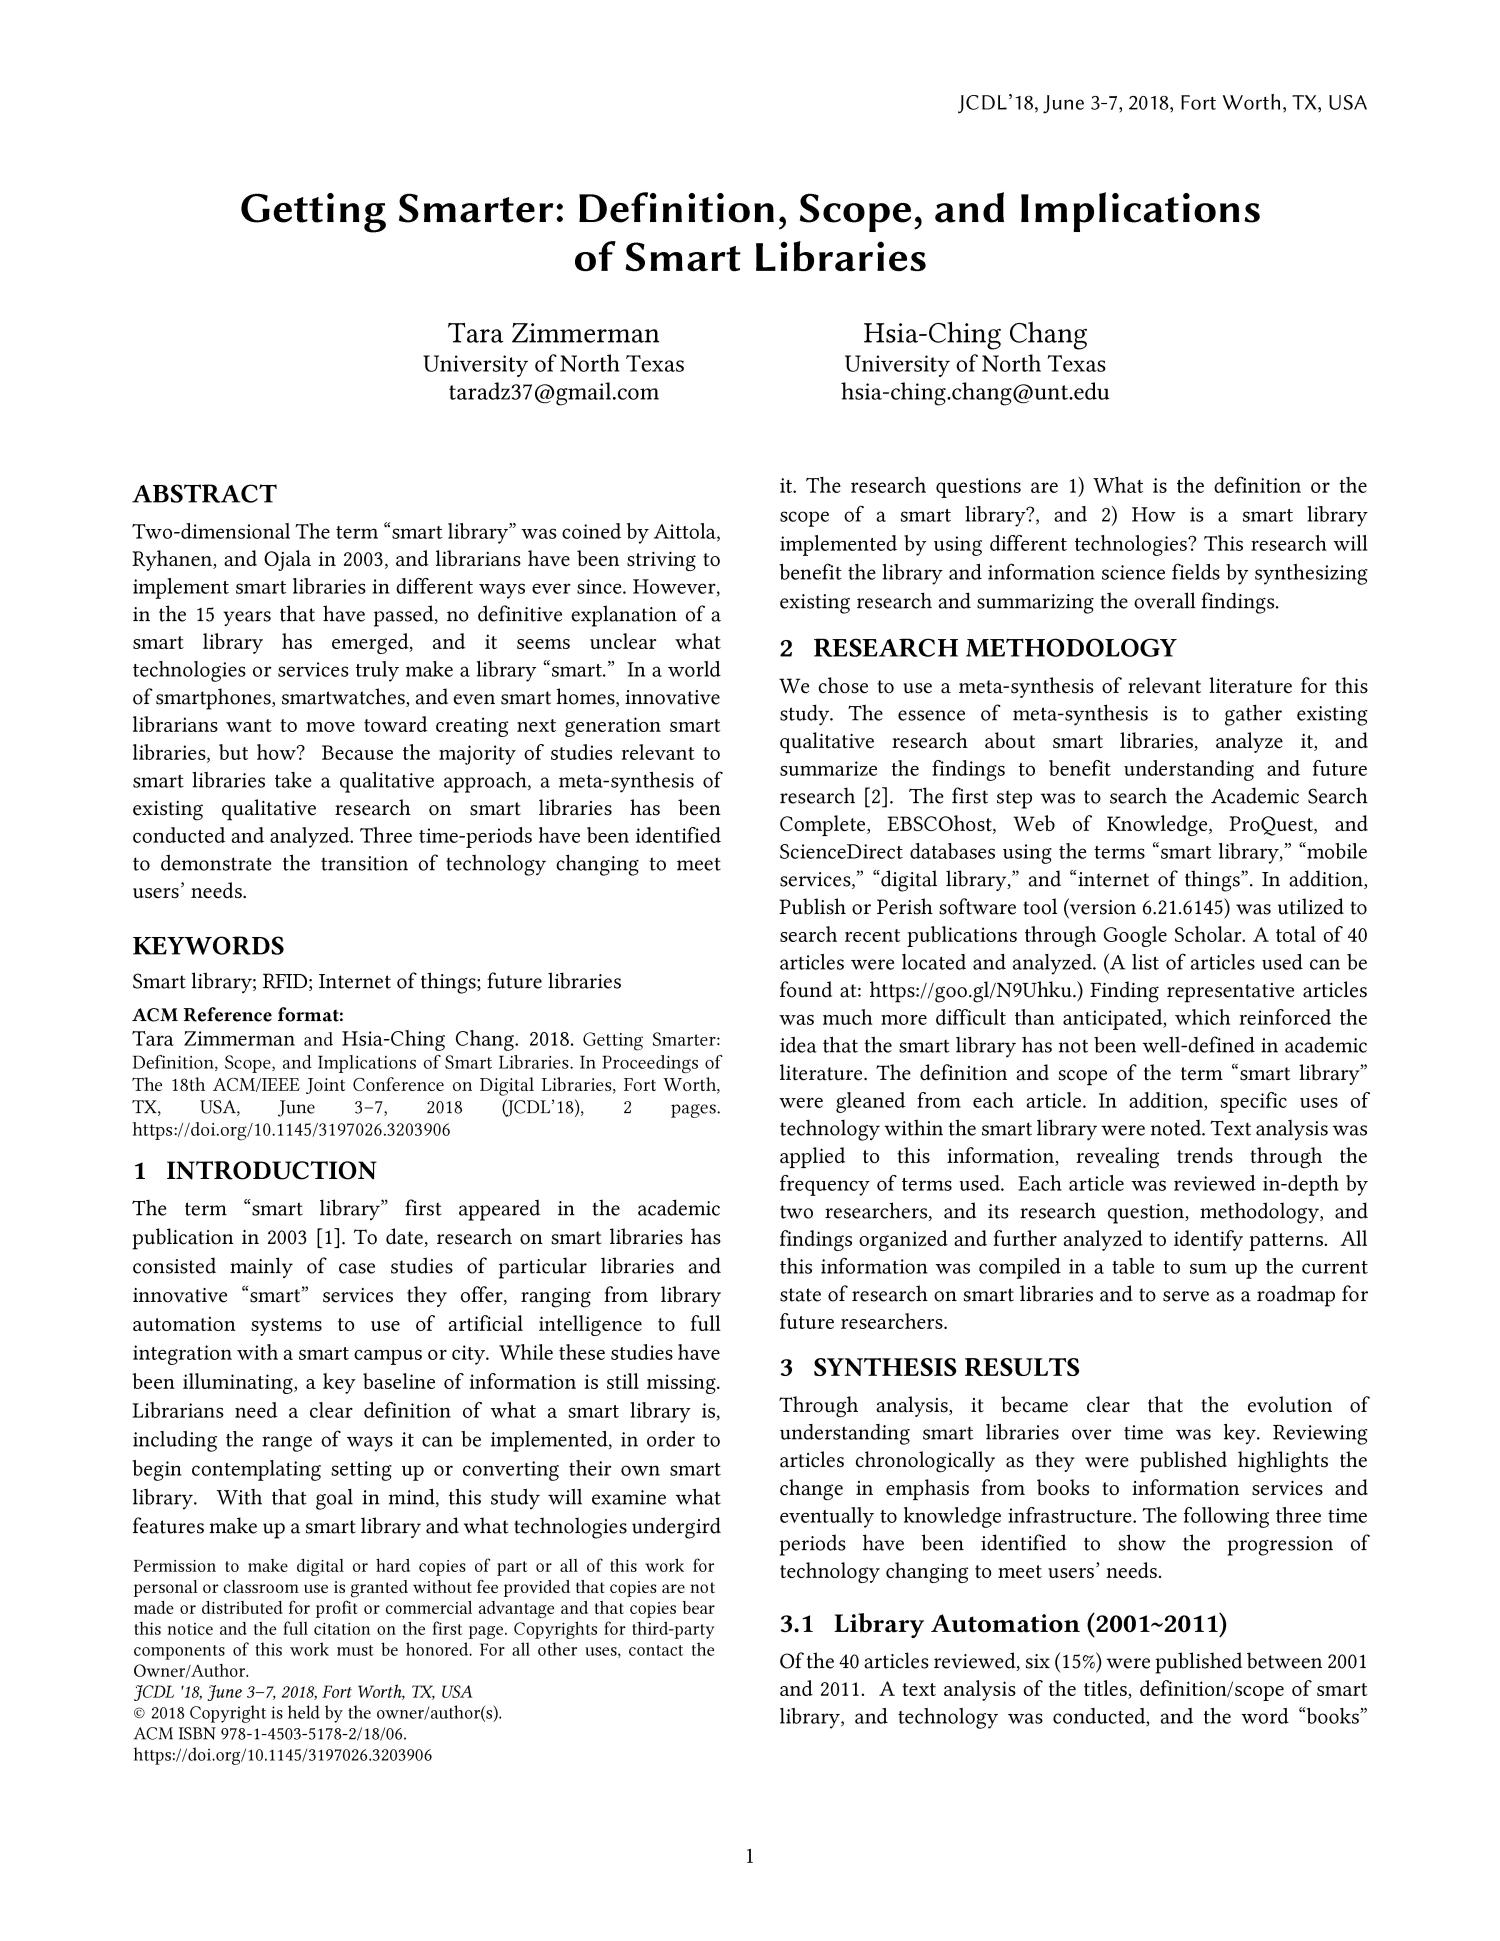 implications and recommendations in research definition